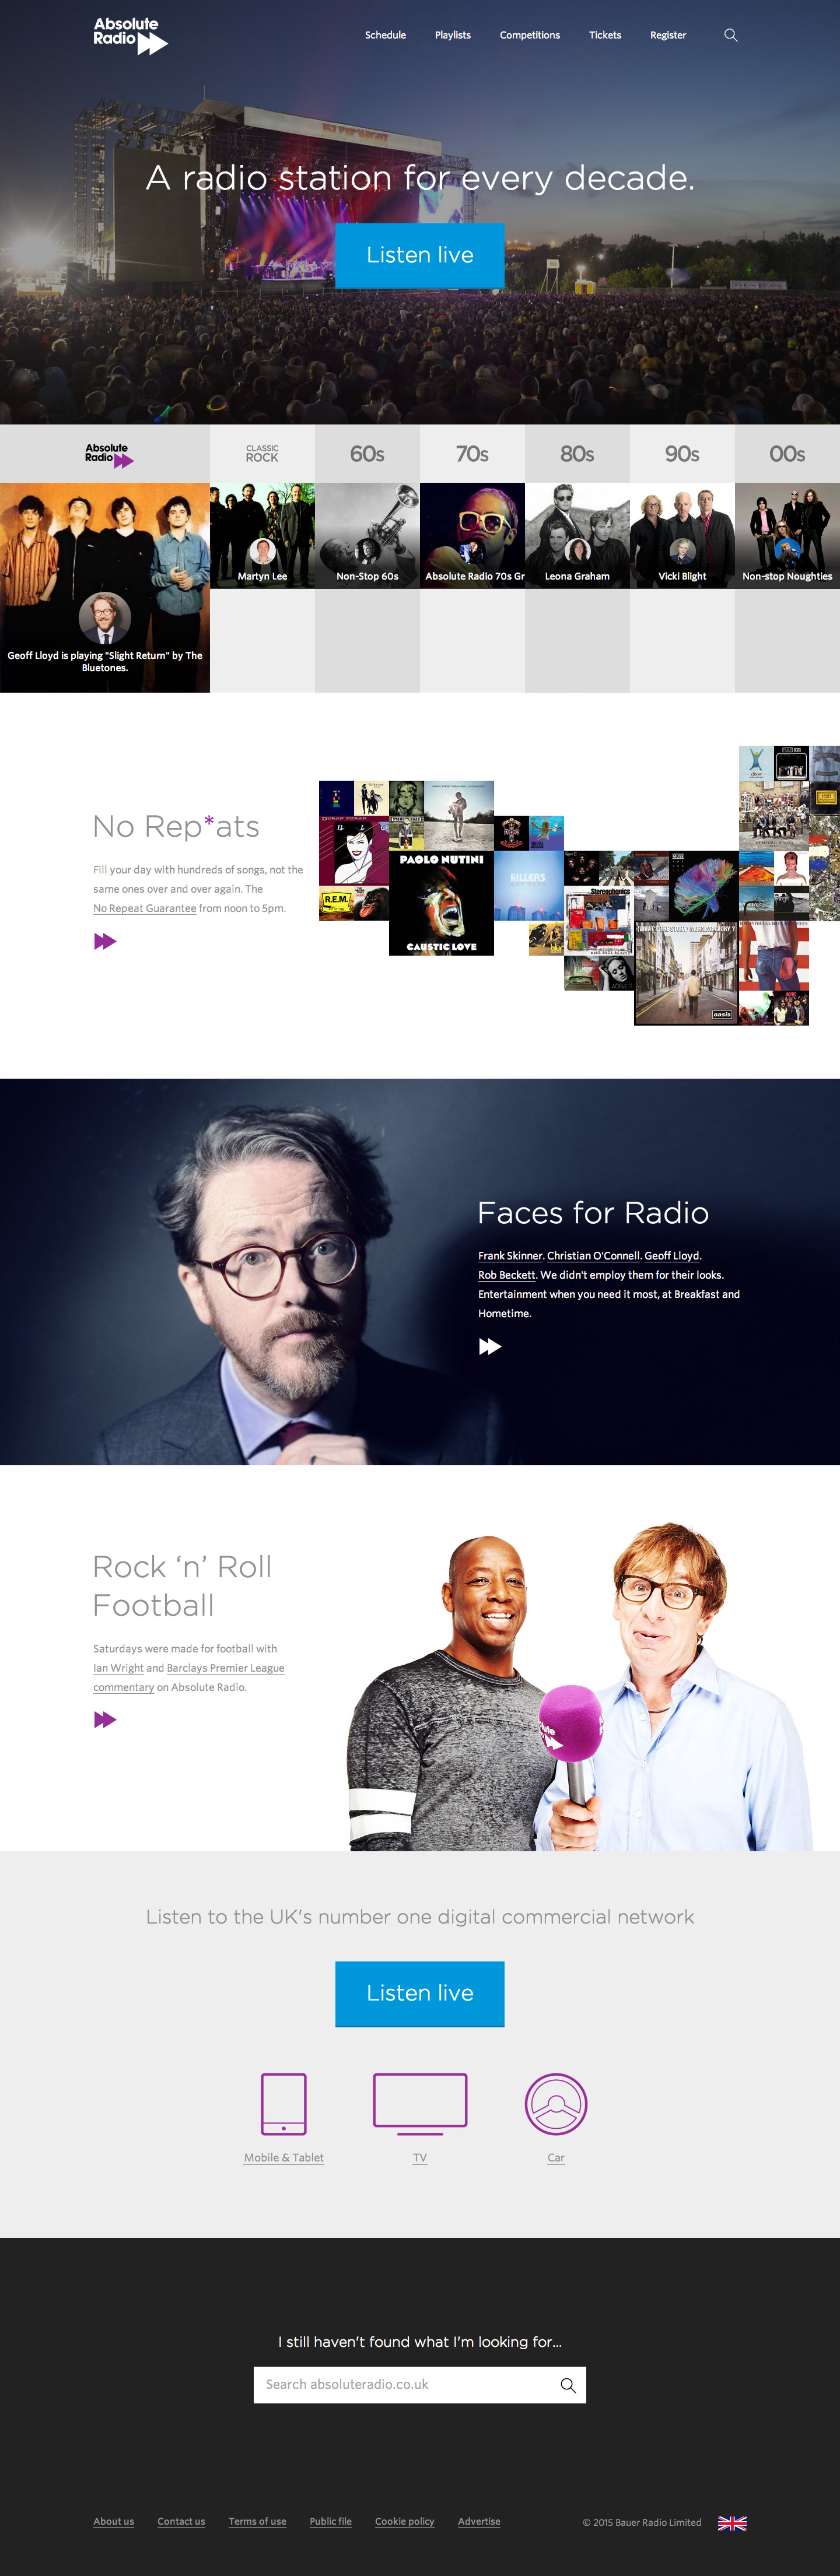 Absolute Radio homepage screenshot